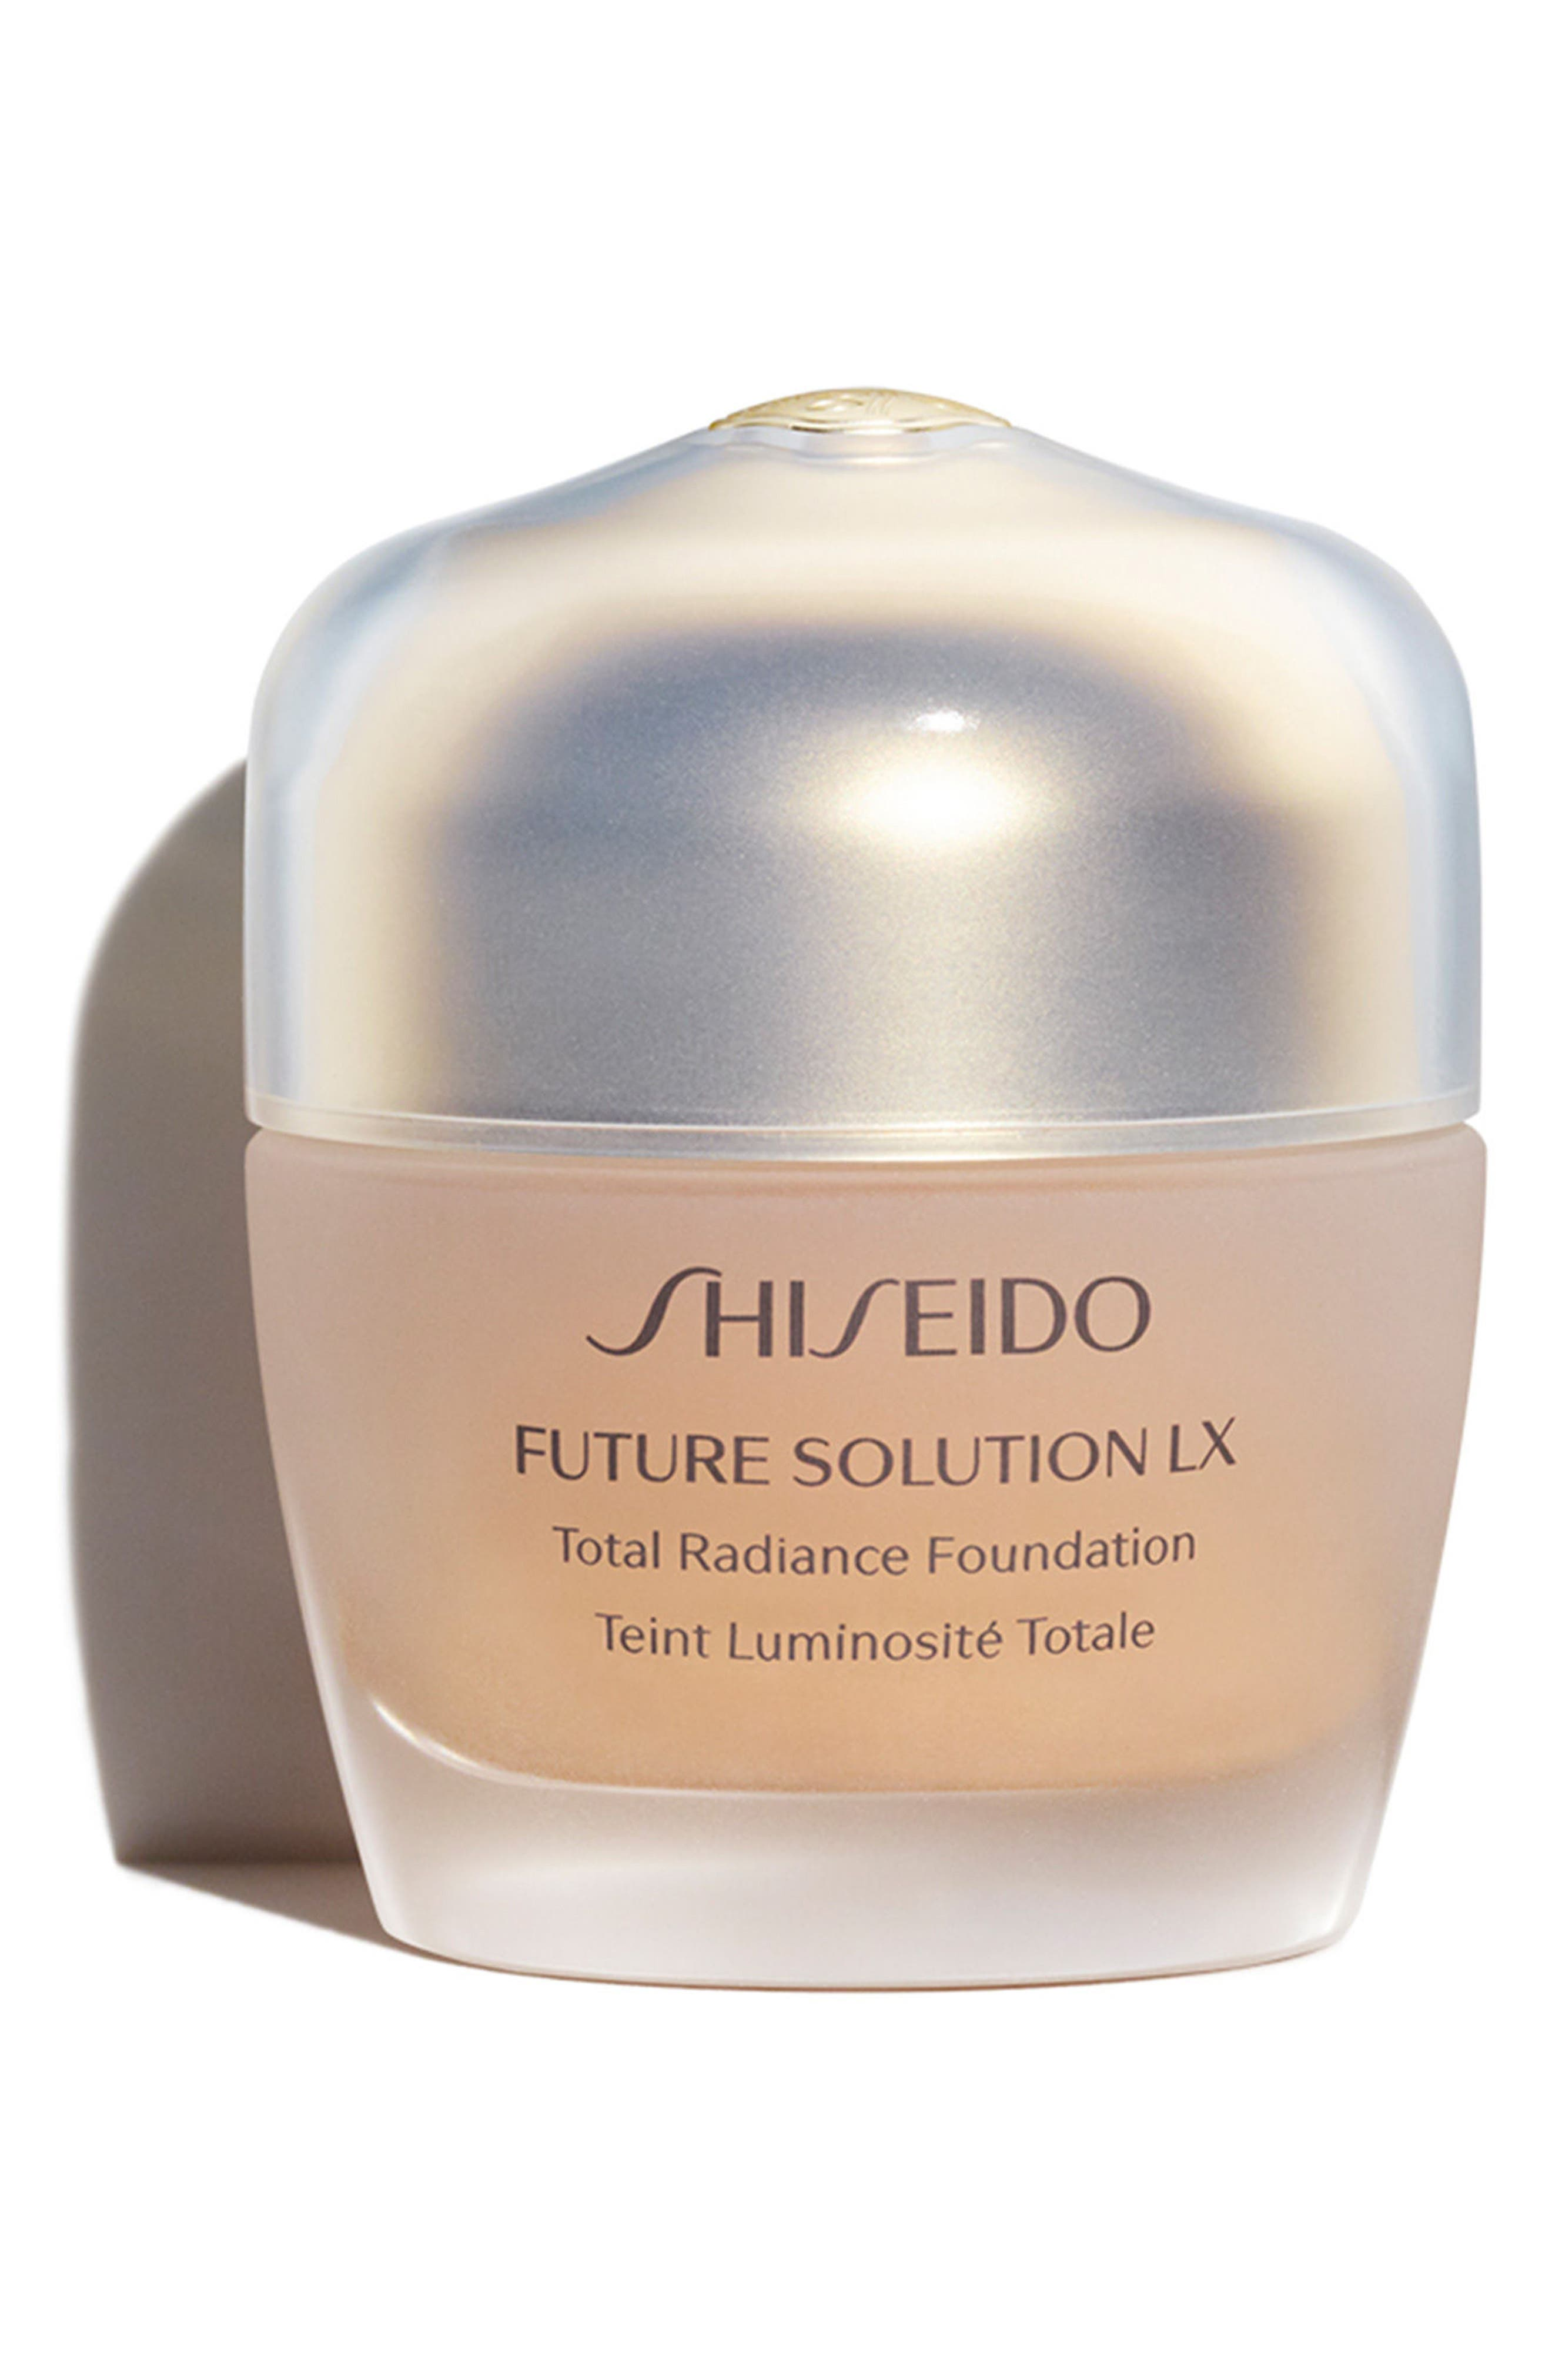 Main Image - Shiseido Future Solution LX Total Radiance Foundation Broad Spectrum SPF 20 Sunscreen (Nordstrom Exclusive)